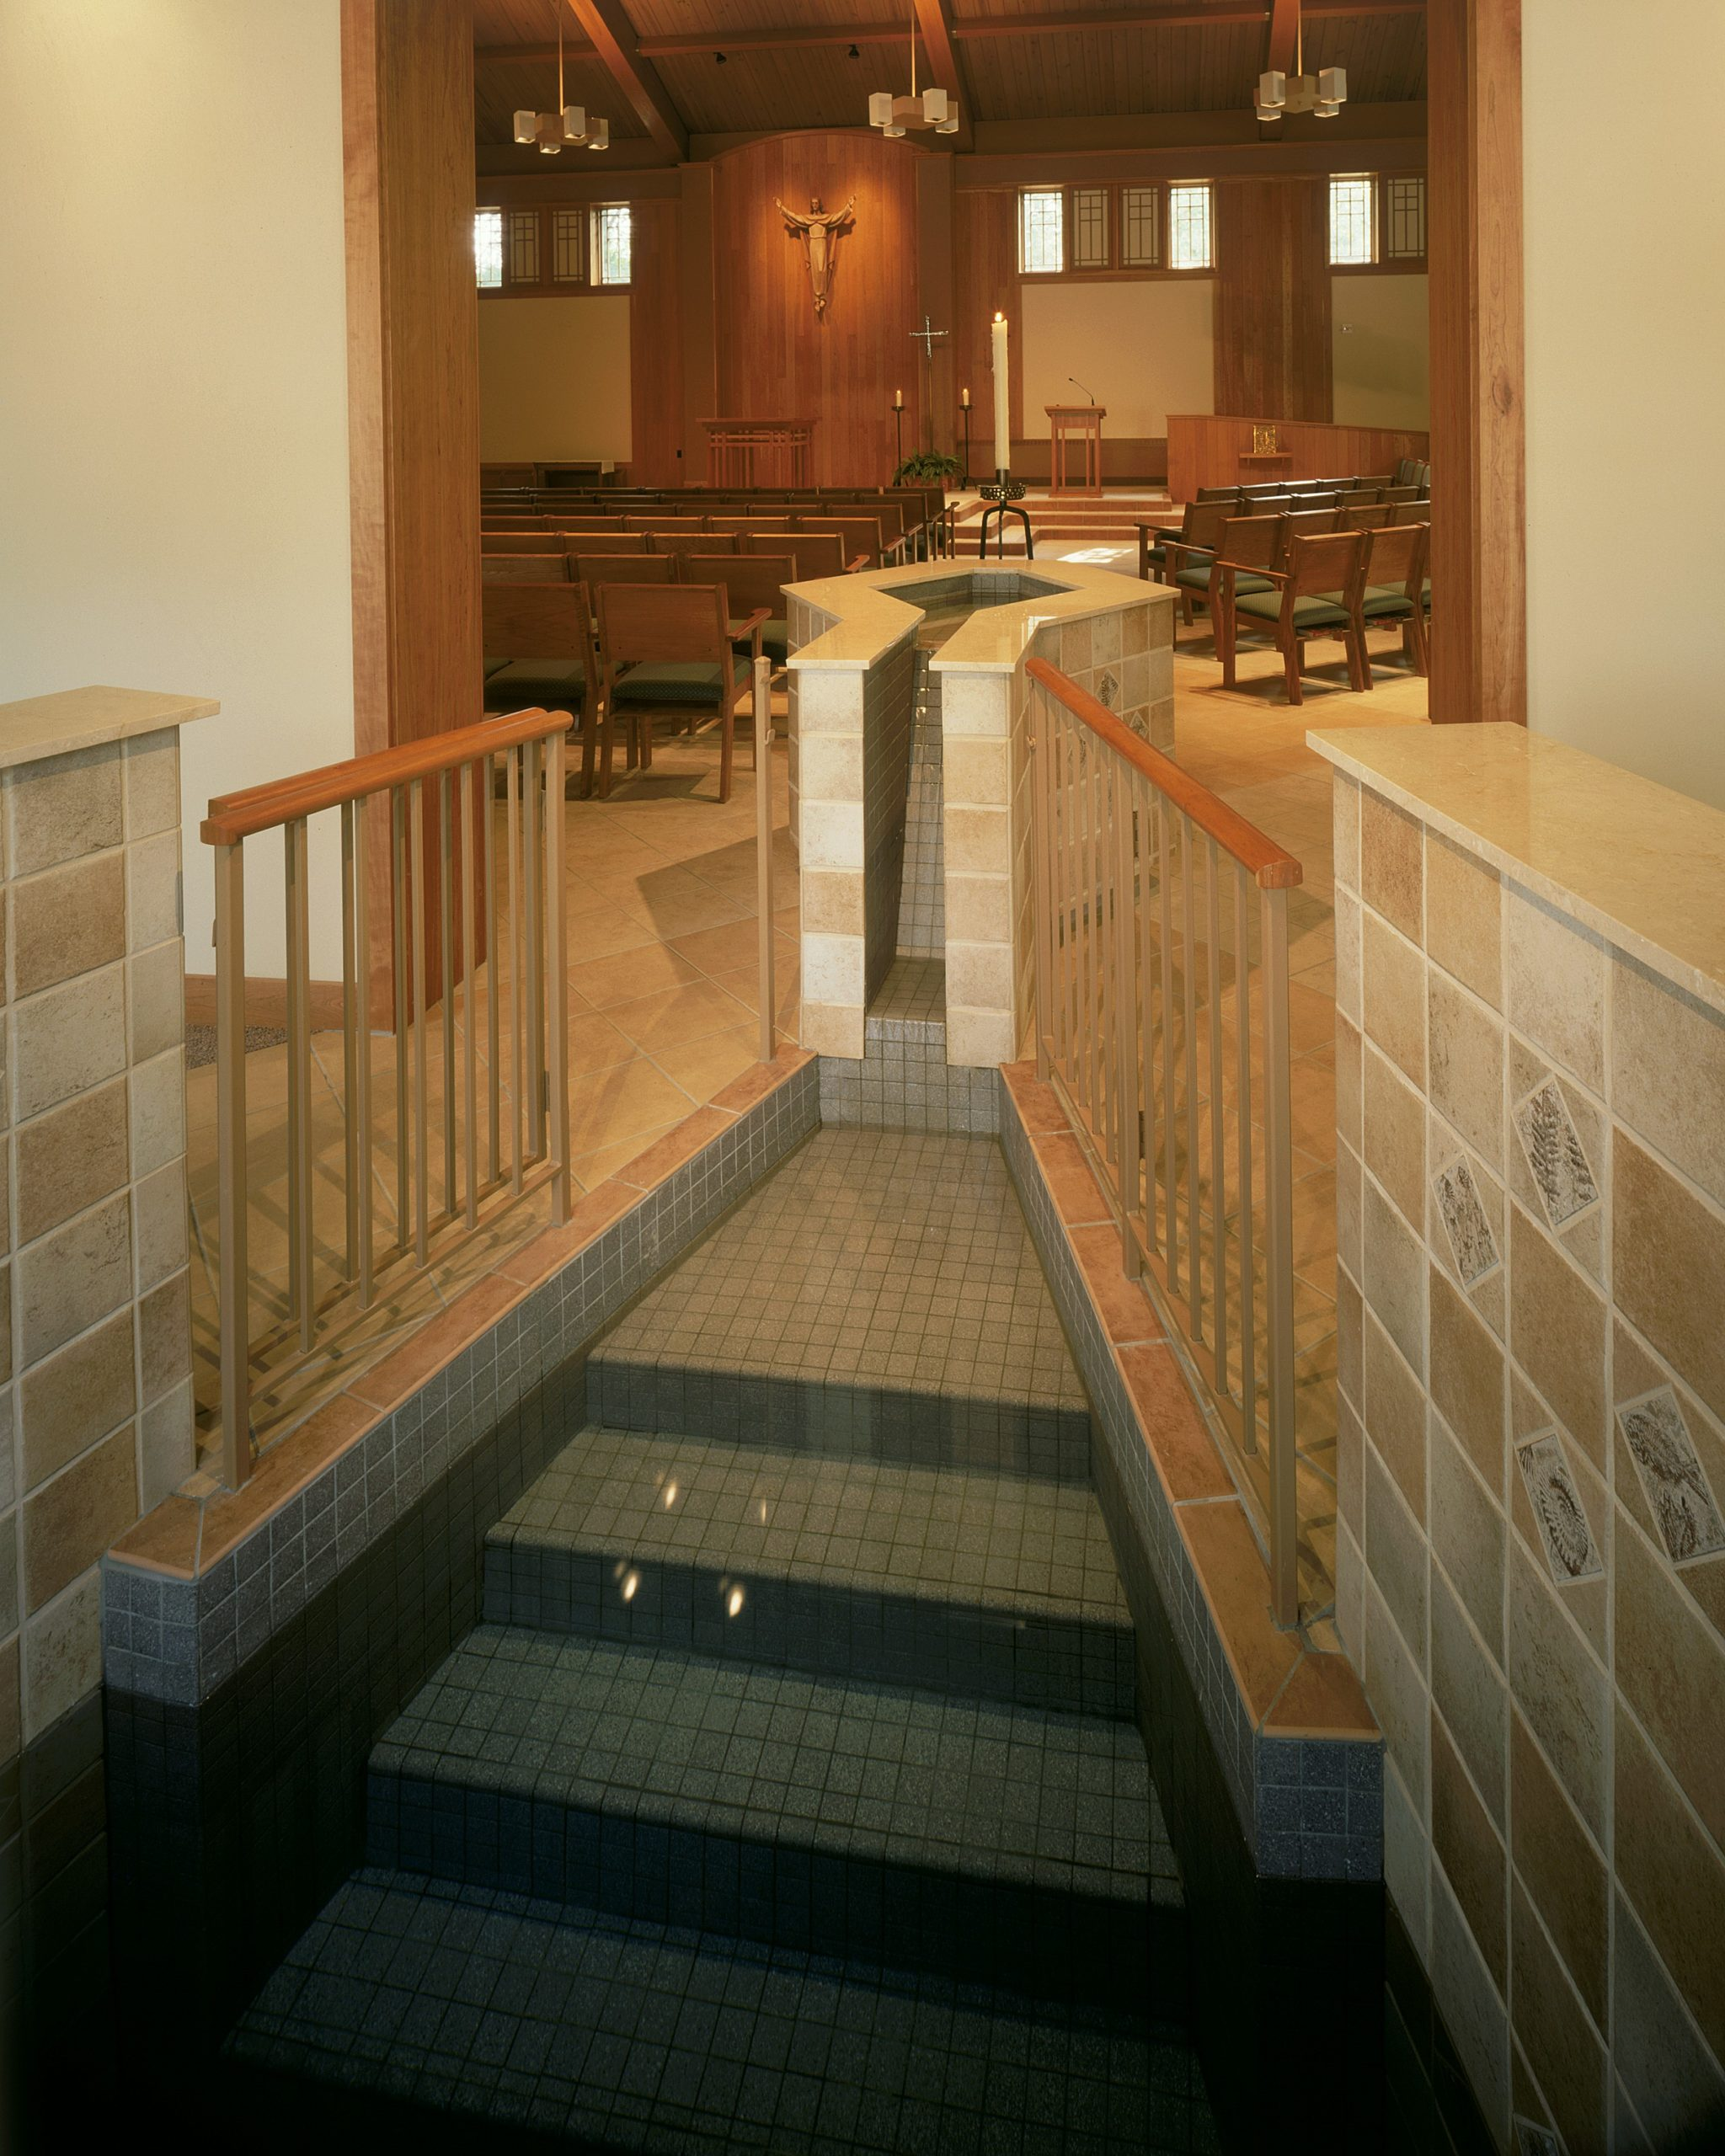 The new, step-down, tomb-shaped baptismal font with water flowing from the infant immersion font